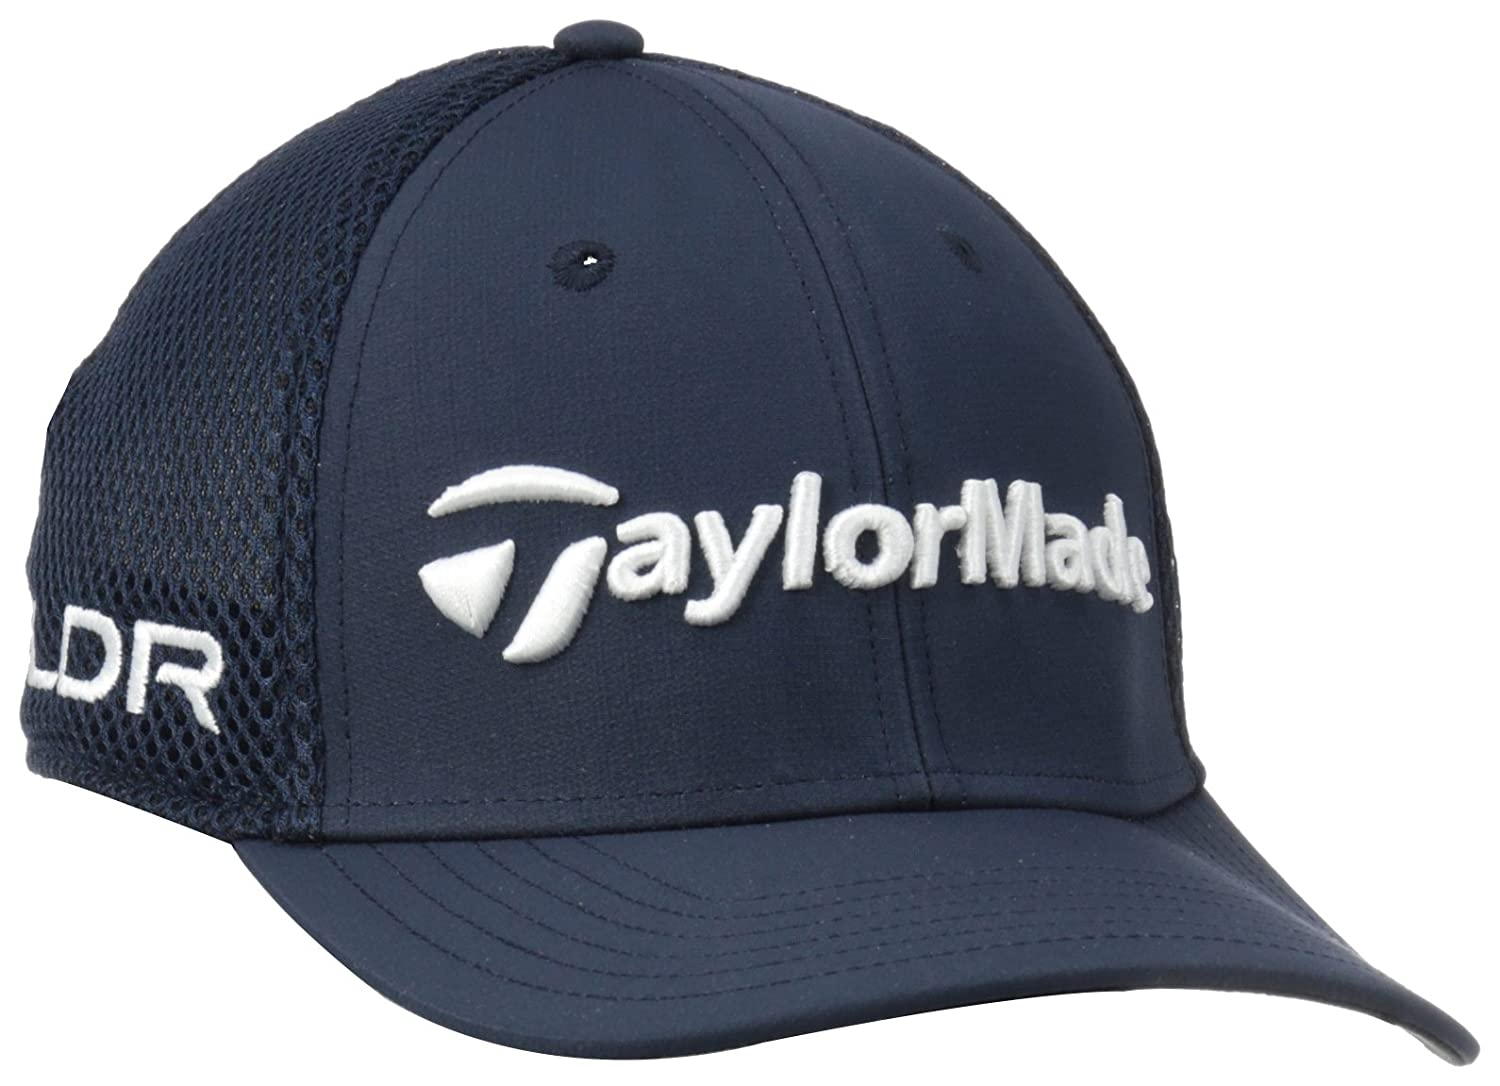 f625a96ef3d Amazon.com : TaylorMade Tour Cage Hat : Golf Caps : Sports & Outdoors